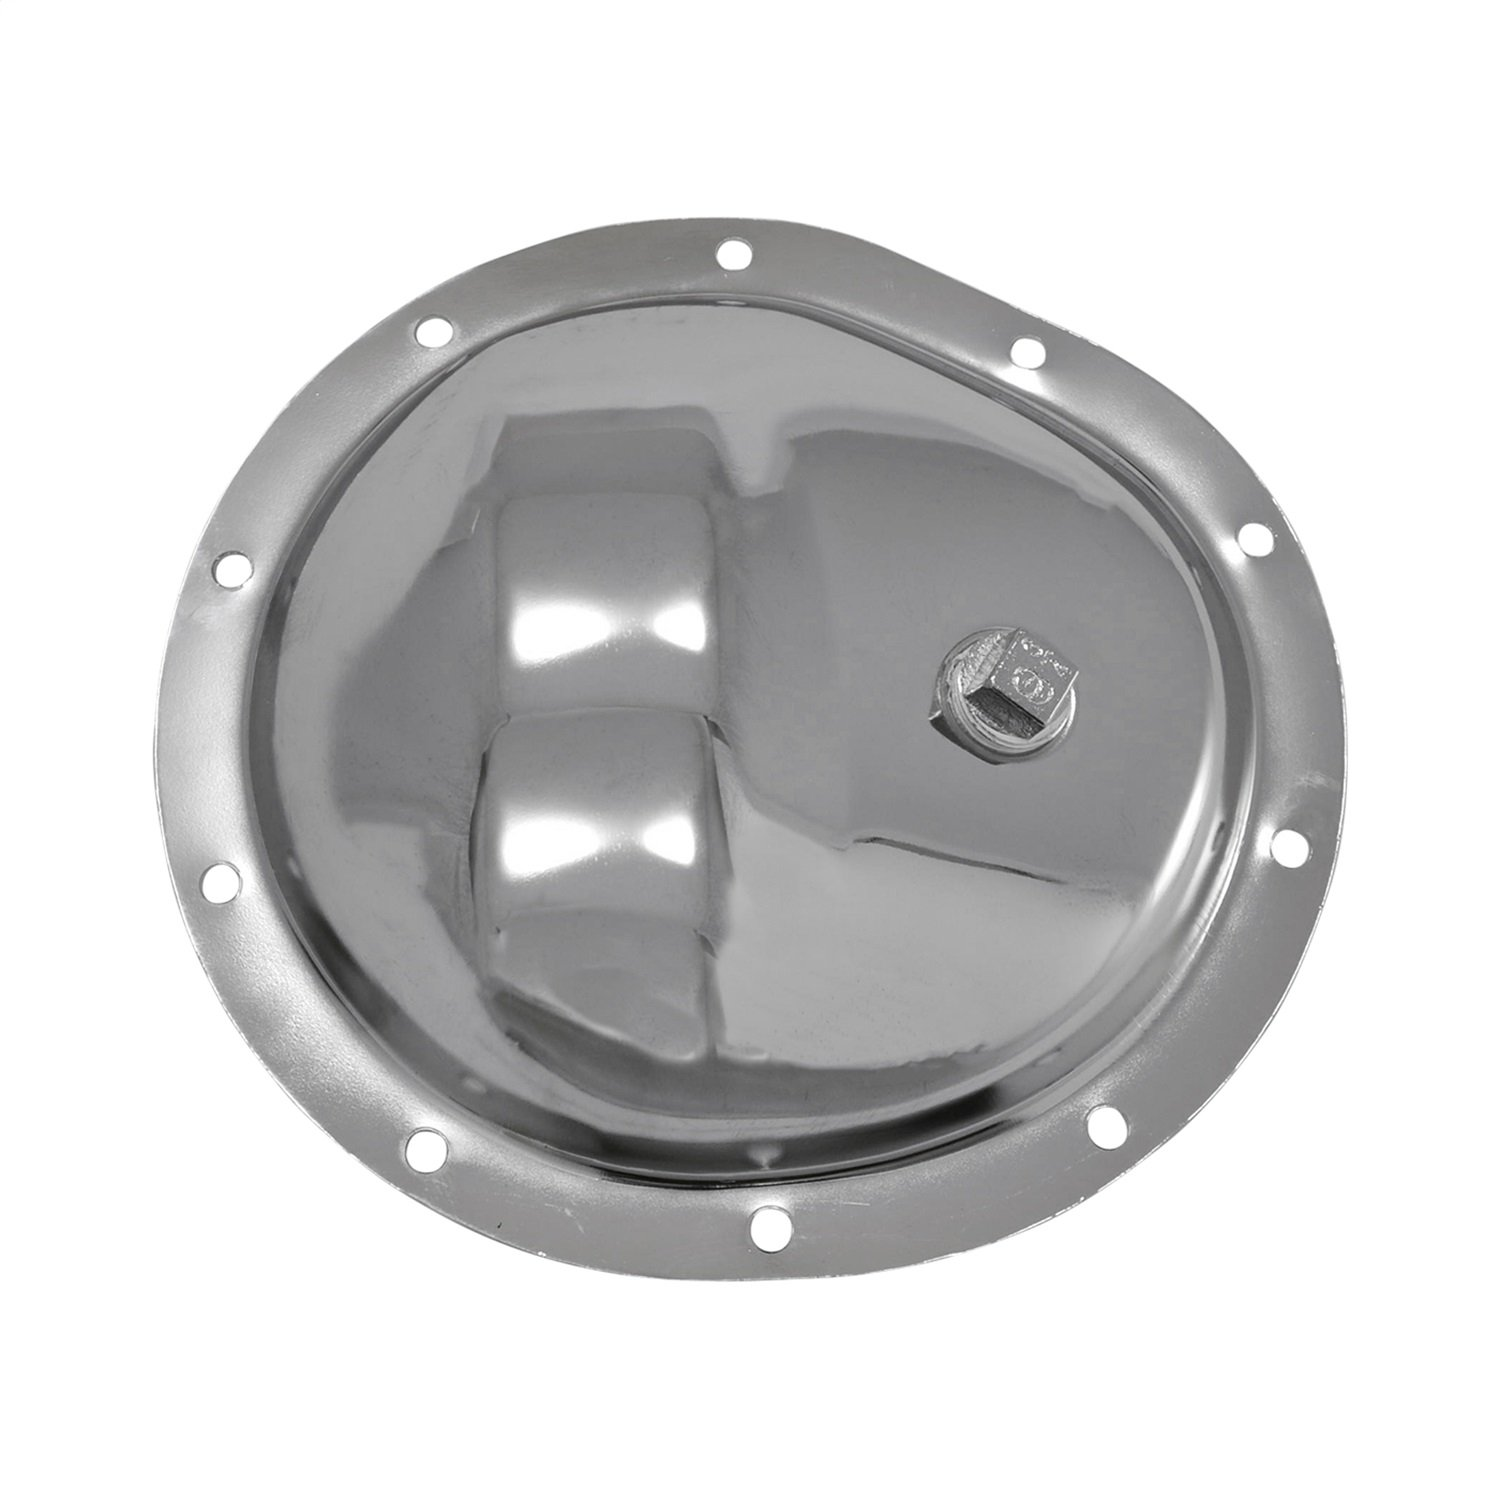 Yukon Gear /& Axle YP C1-GM8.5-F Chrome Cover for GM 8.5 Front Differential